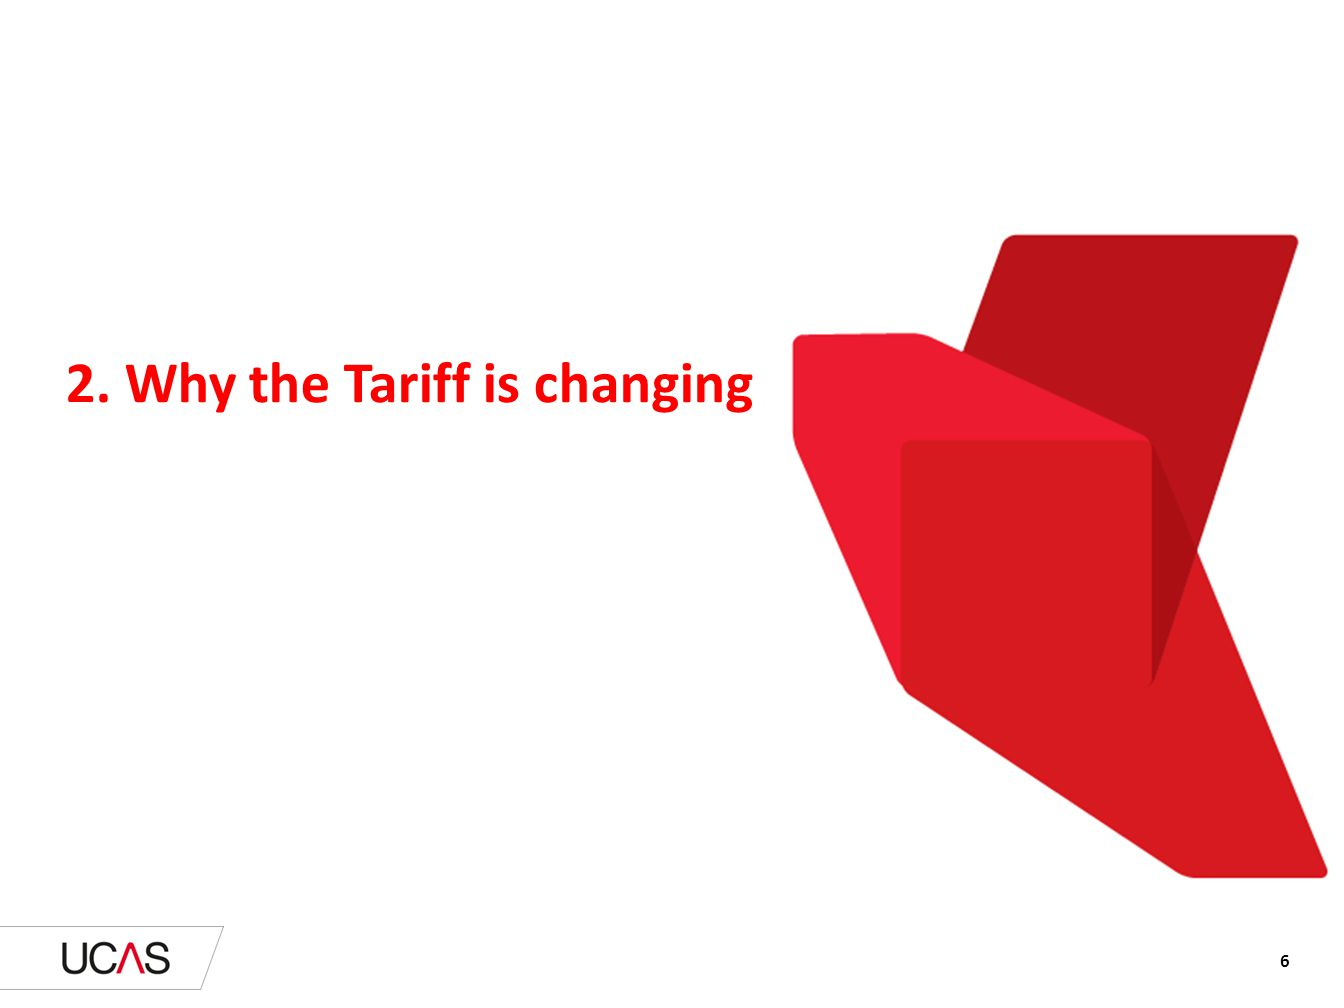 2. Why the Tariff is changing